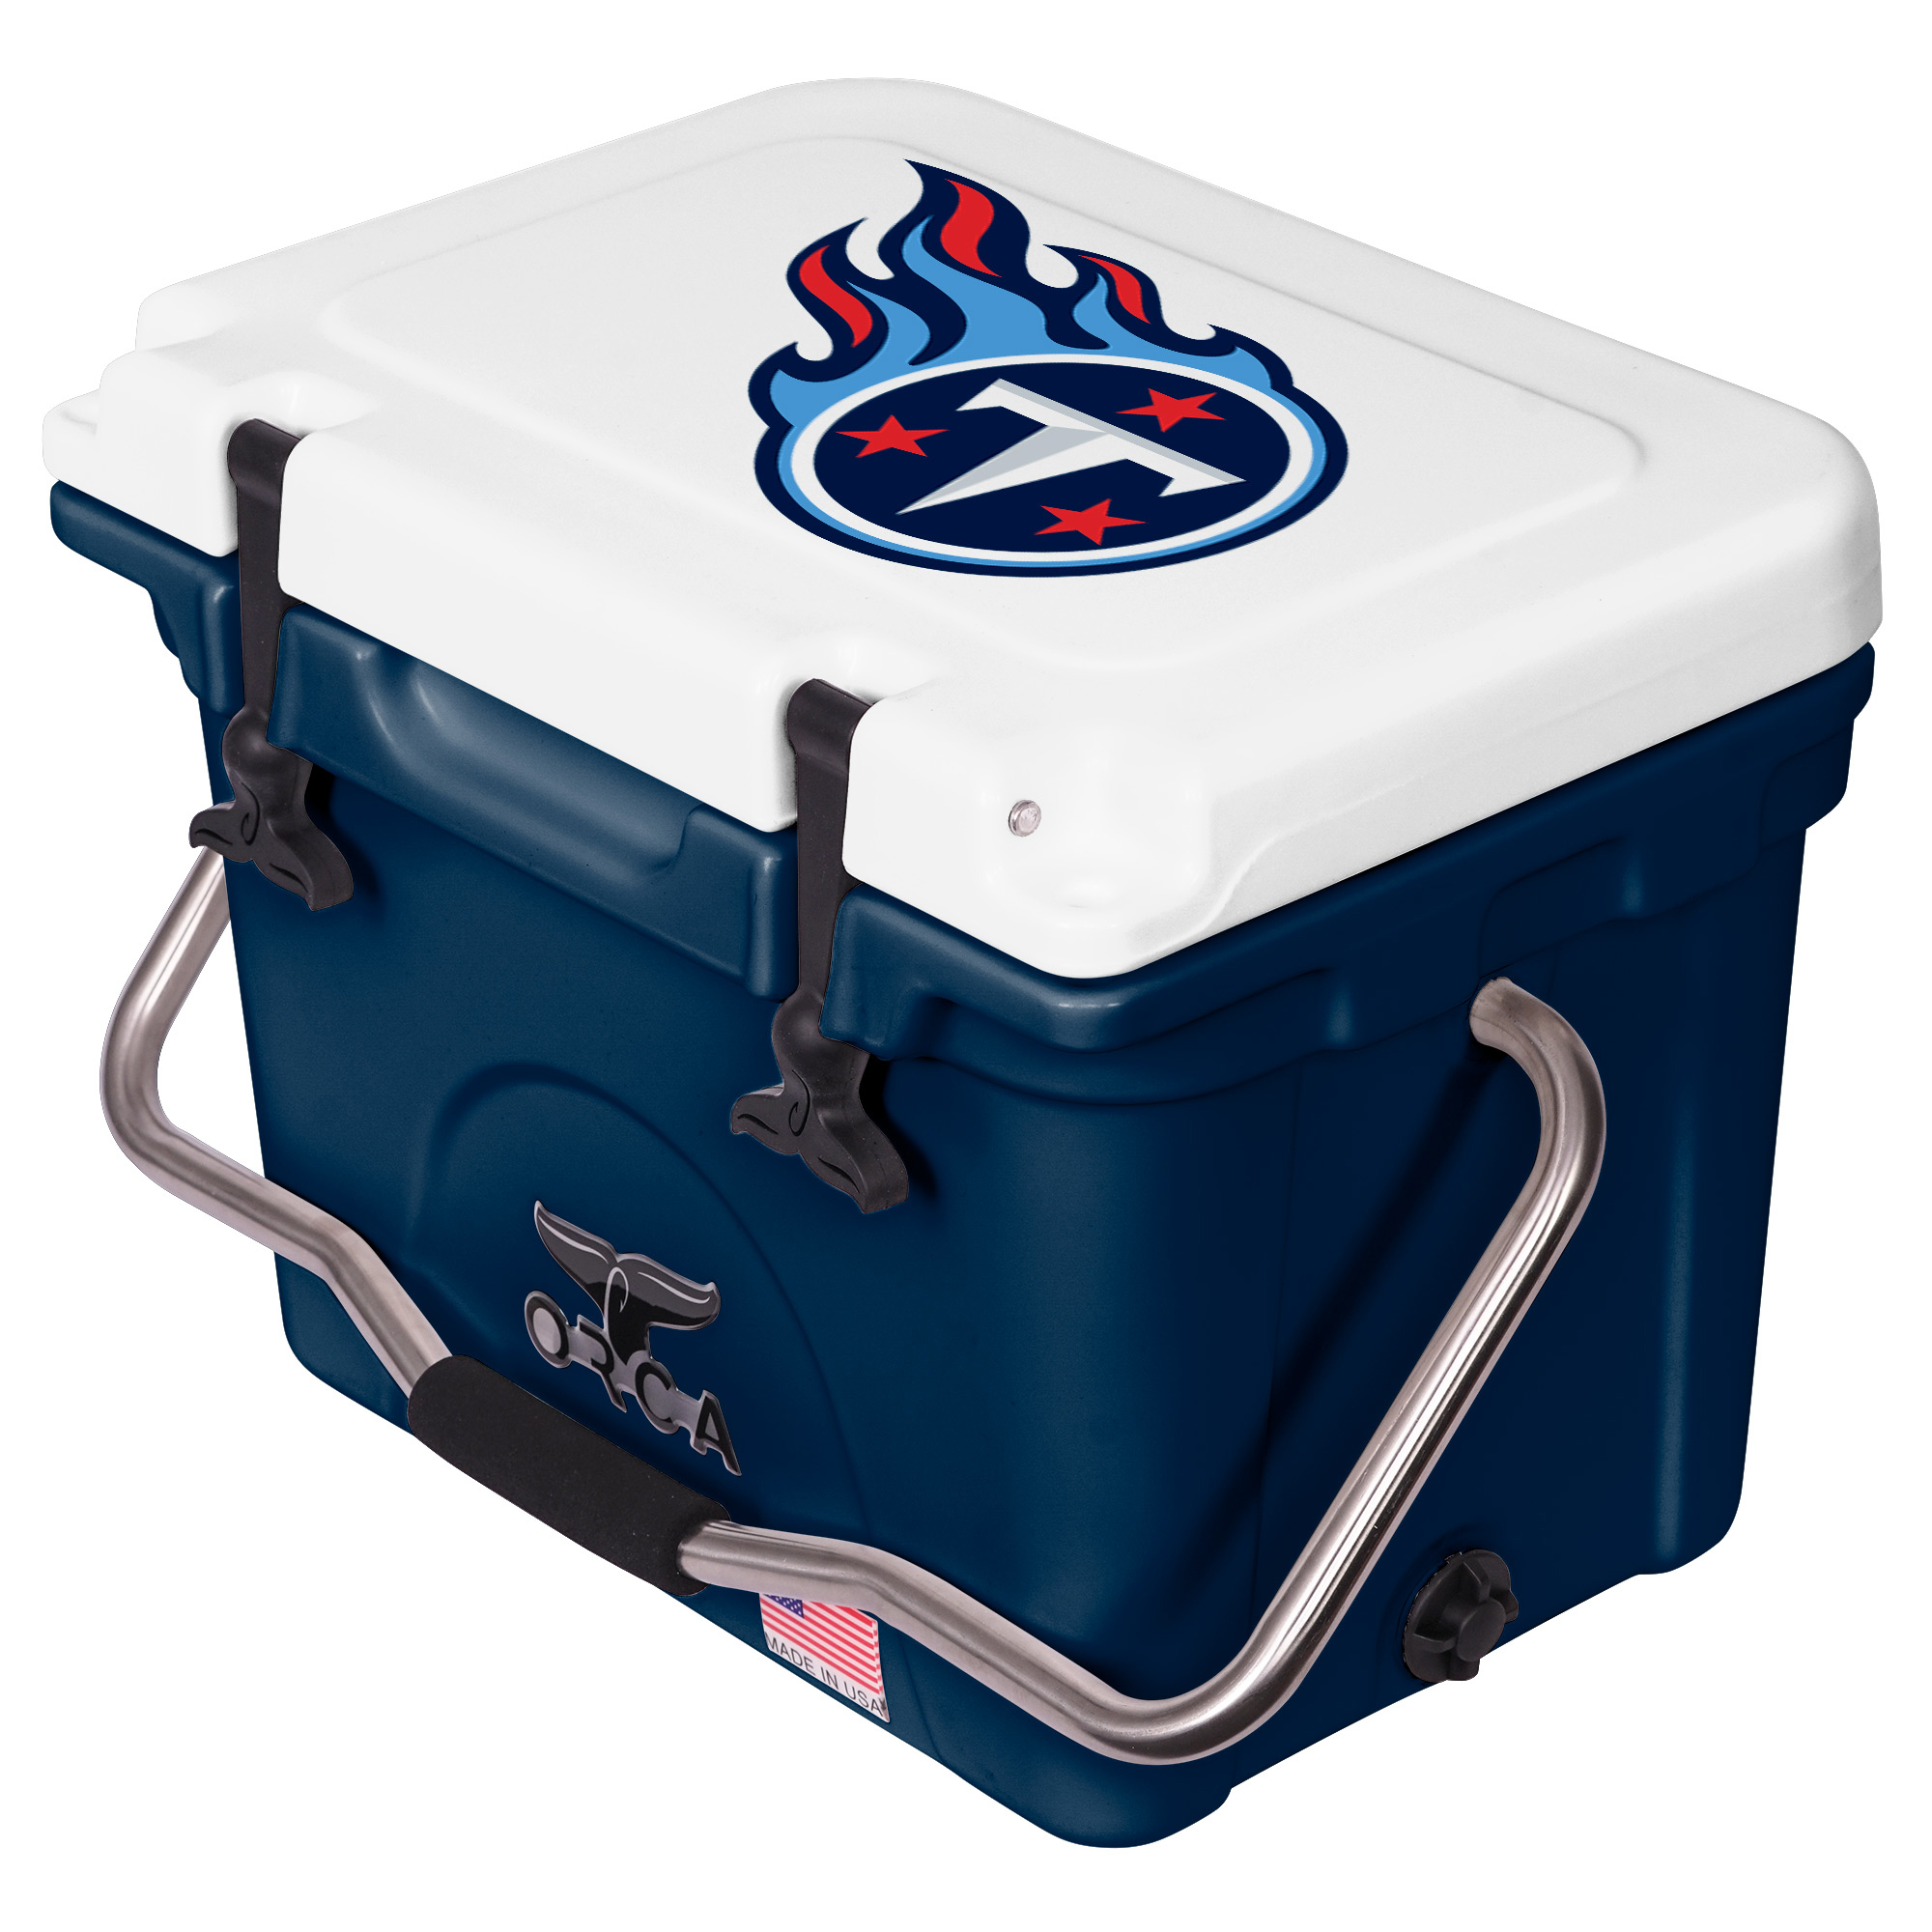 Tennessee Titans ORCA 20-Quart Hard-Sided Cooler - Navy/White - No Size